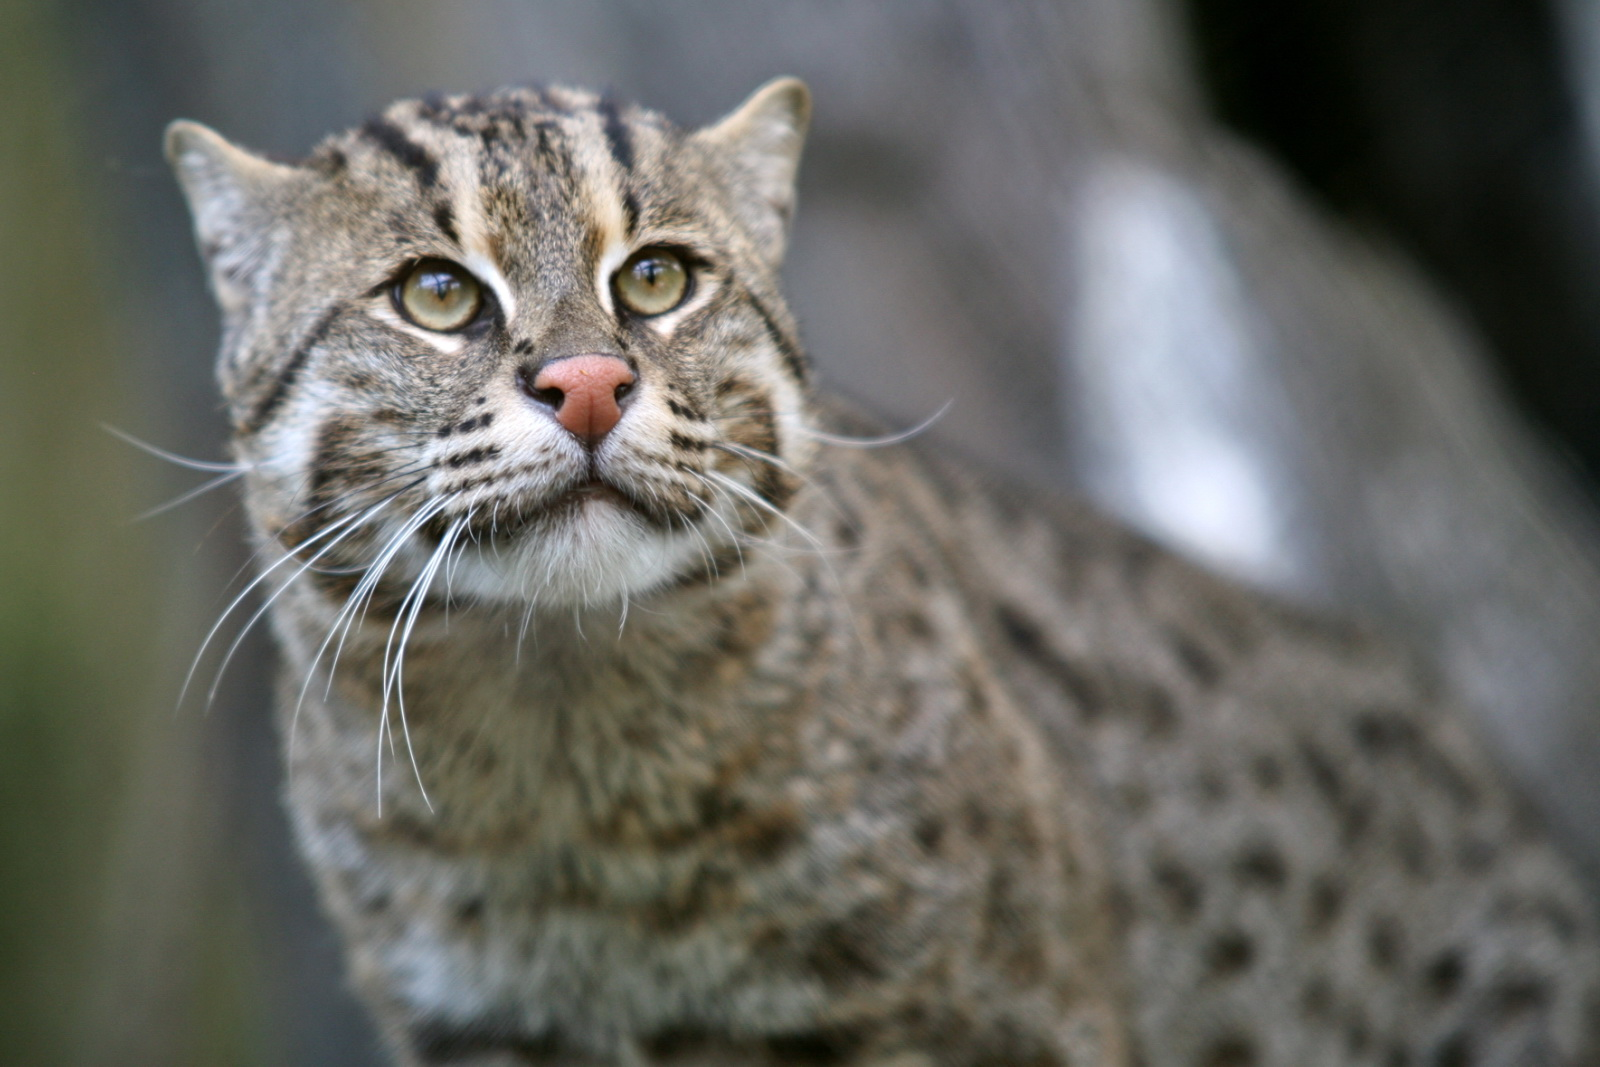 Fishing Cat (Prionailurus viverrinus) 3.jpg